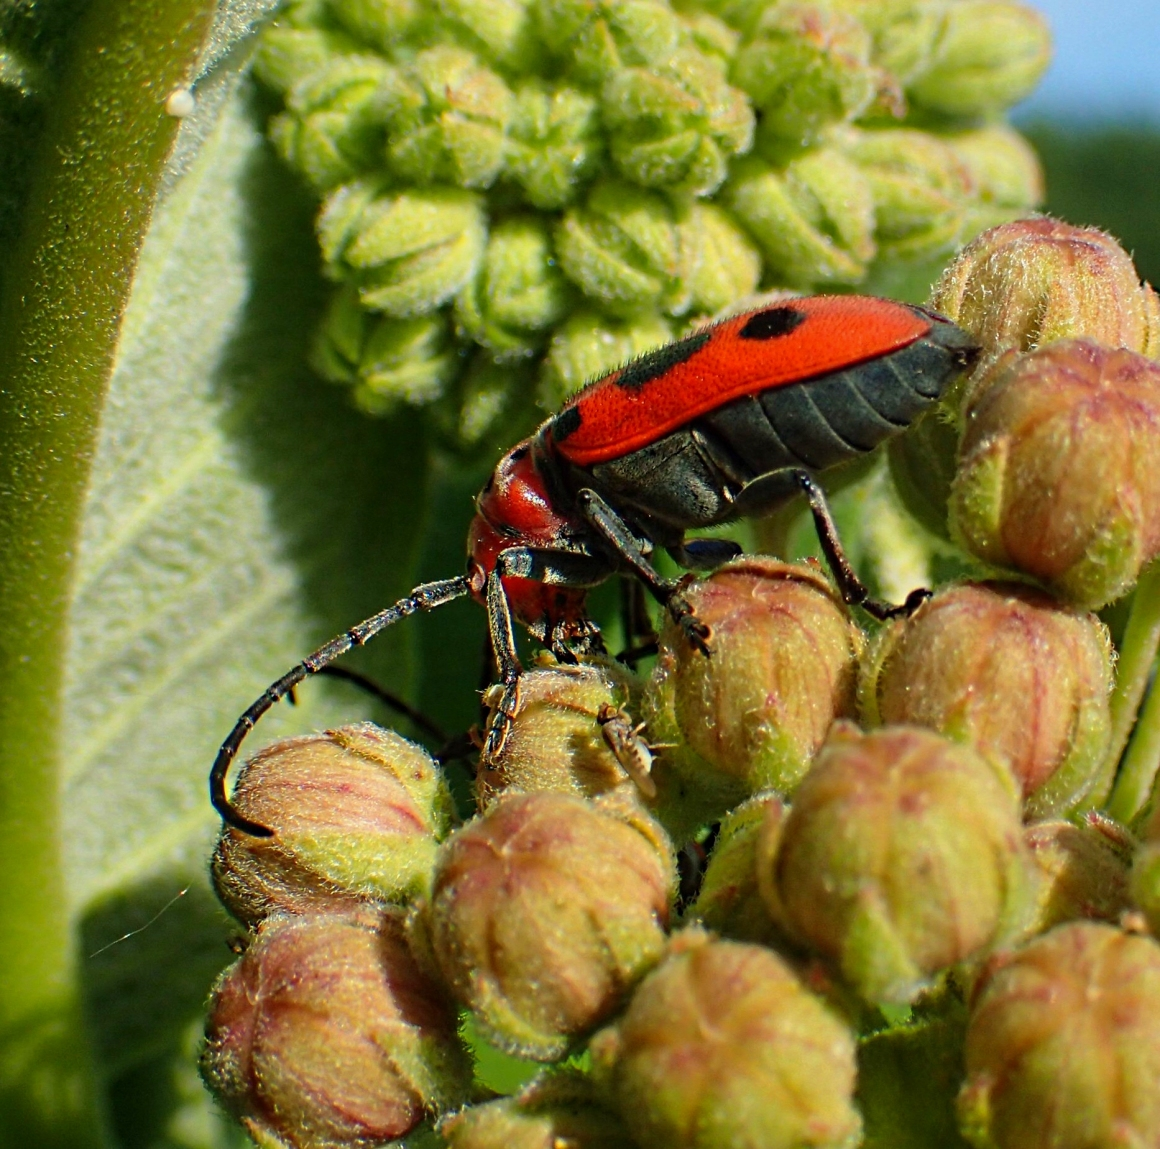 Fruit-fly observing the Milkweed Beetle beginning to eat!  Photo by Thomas Peace 2014